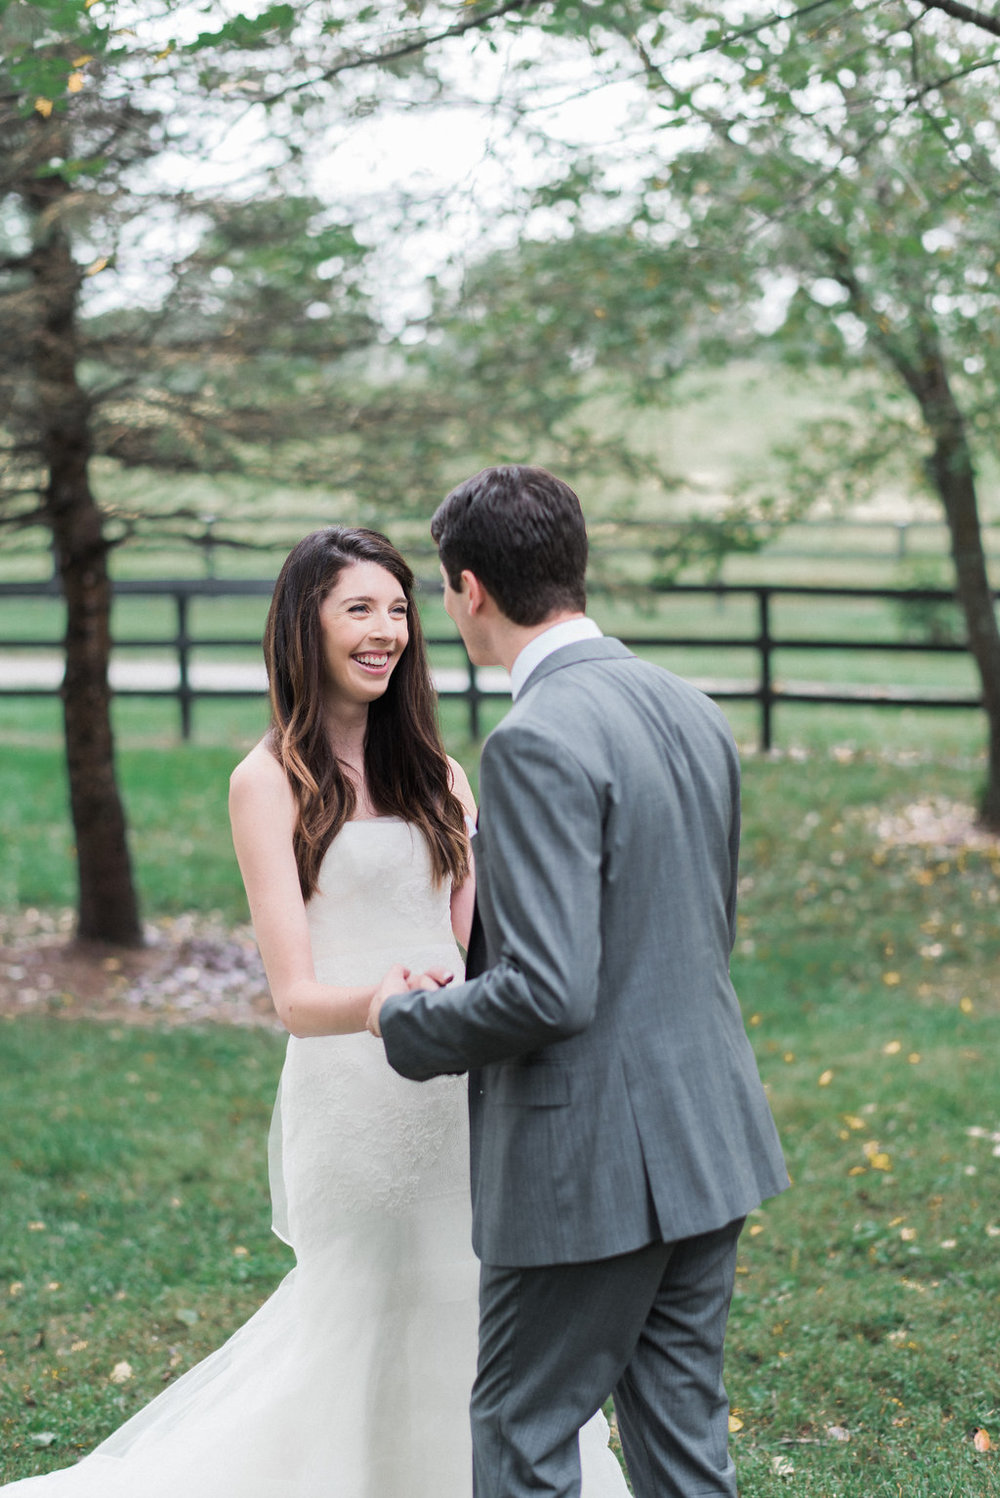 Virginia Countryside Fall Wedding by East Made Event Company fine art destination wedding planner and Julie Paisley Photography as featured on Style Me Pretty.jpg